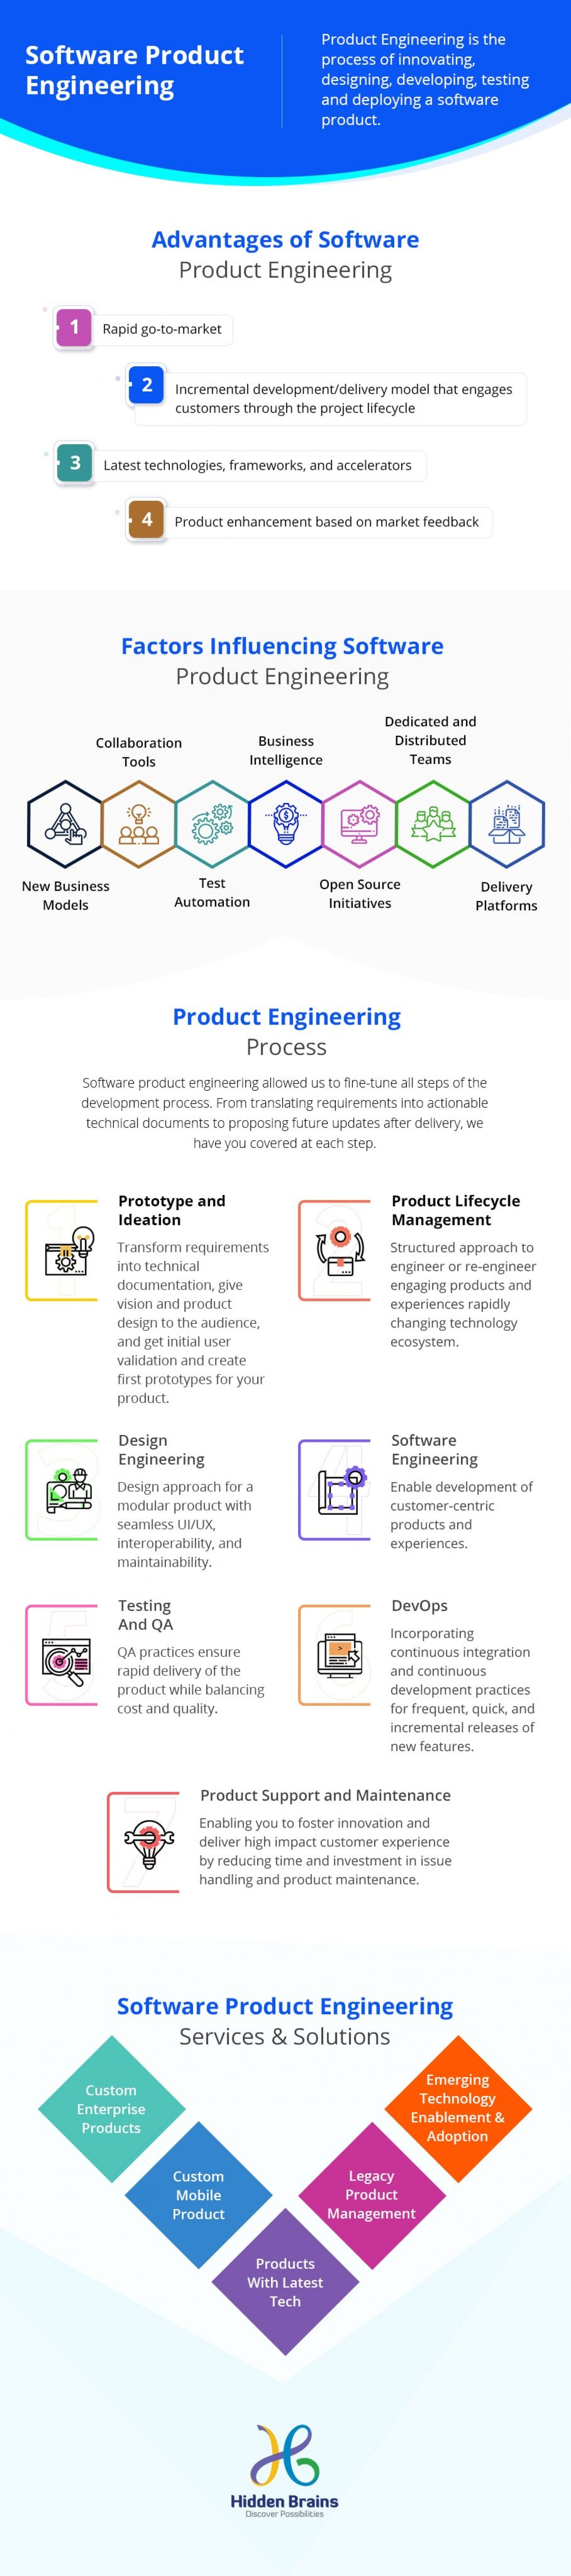 Infographic: Software Product Engineering for Business Growth Infographic